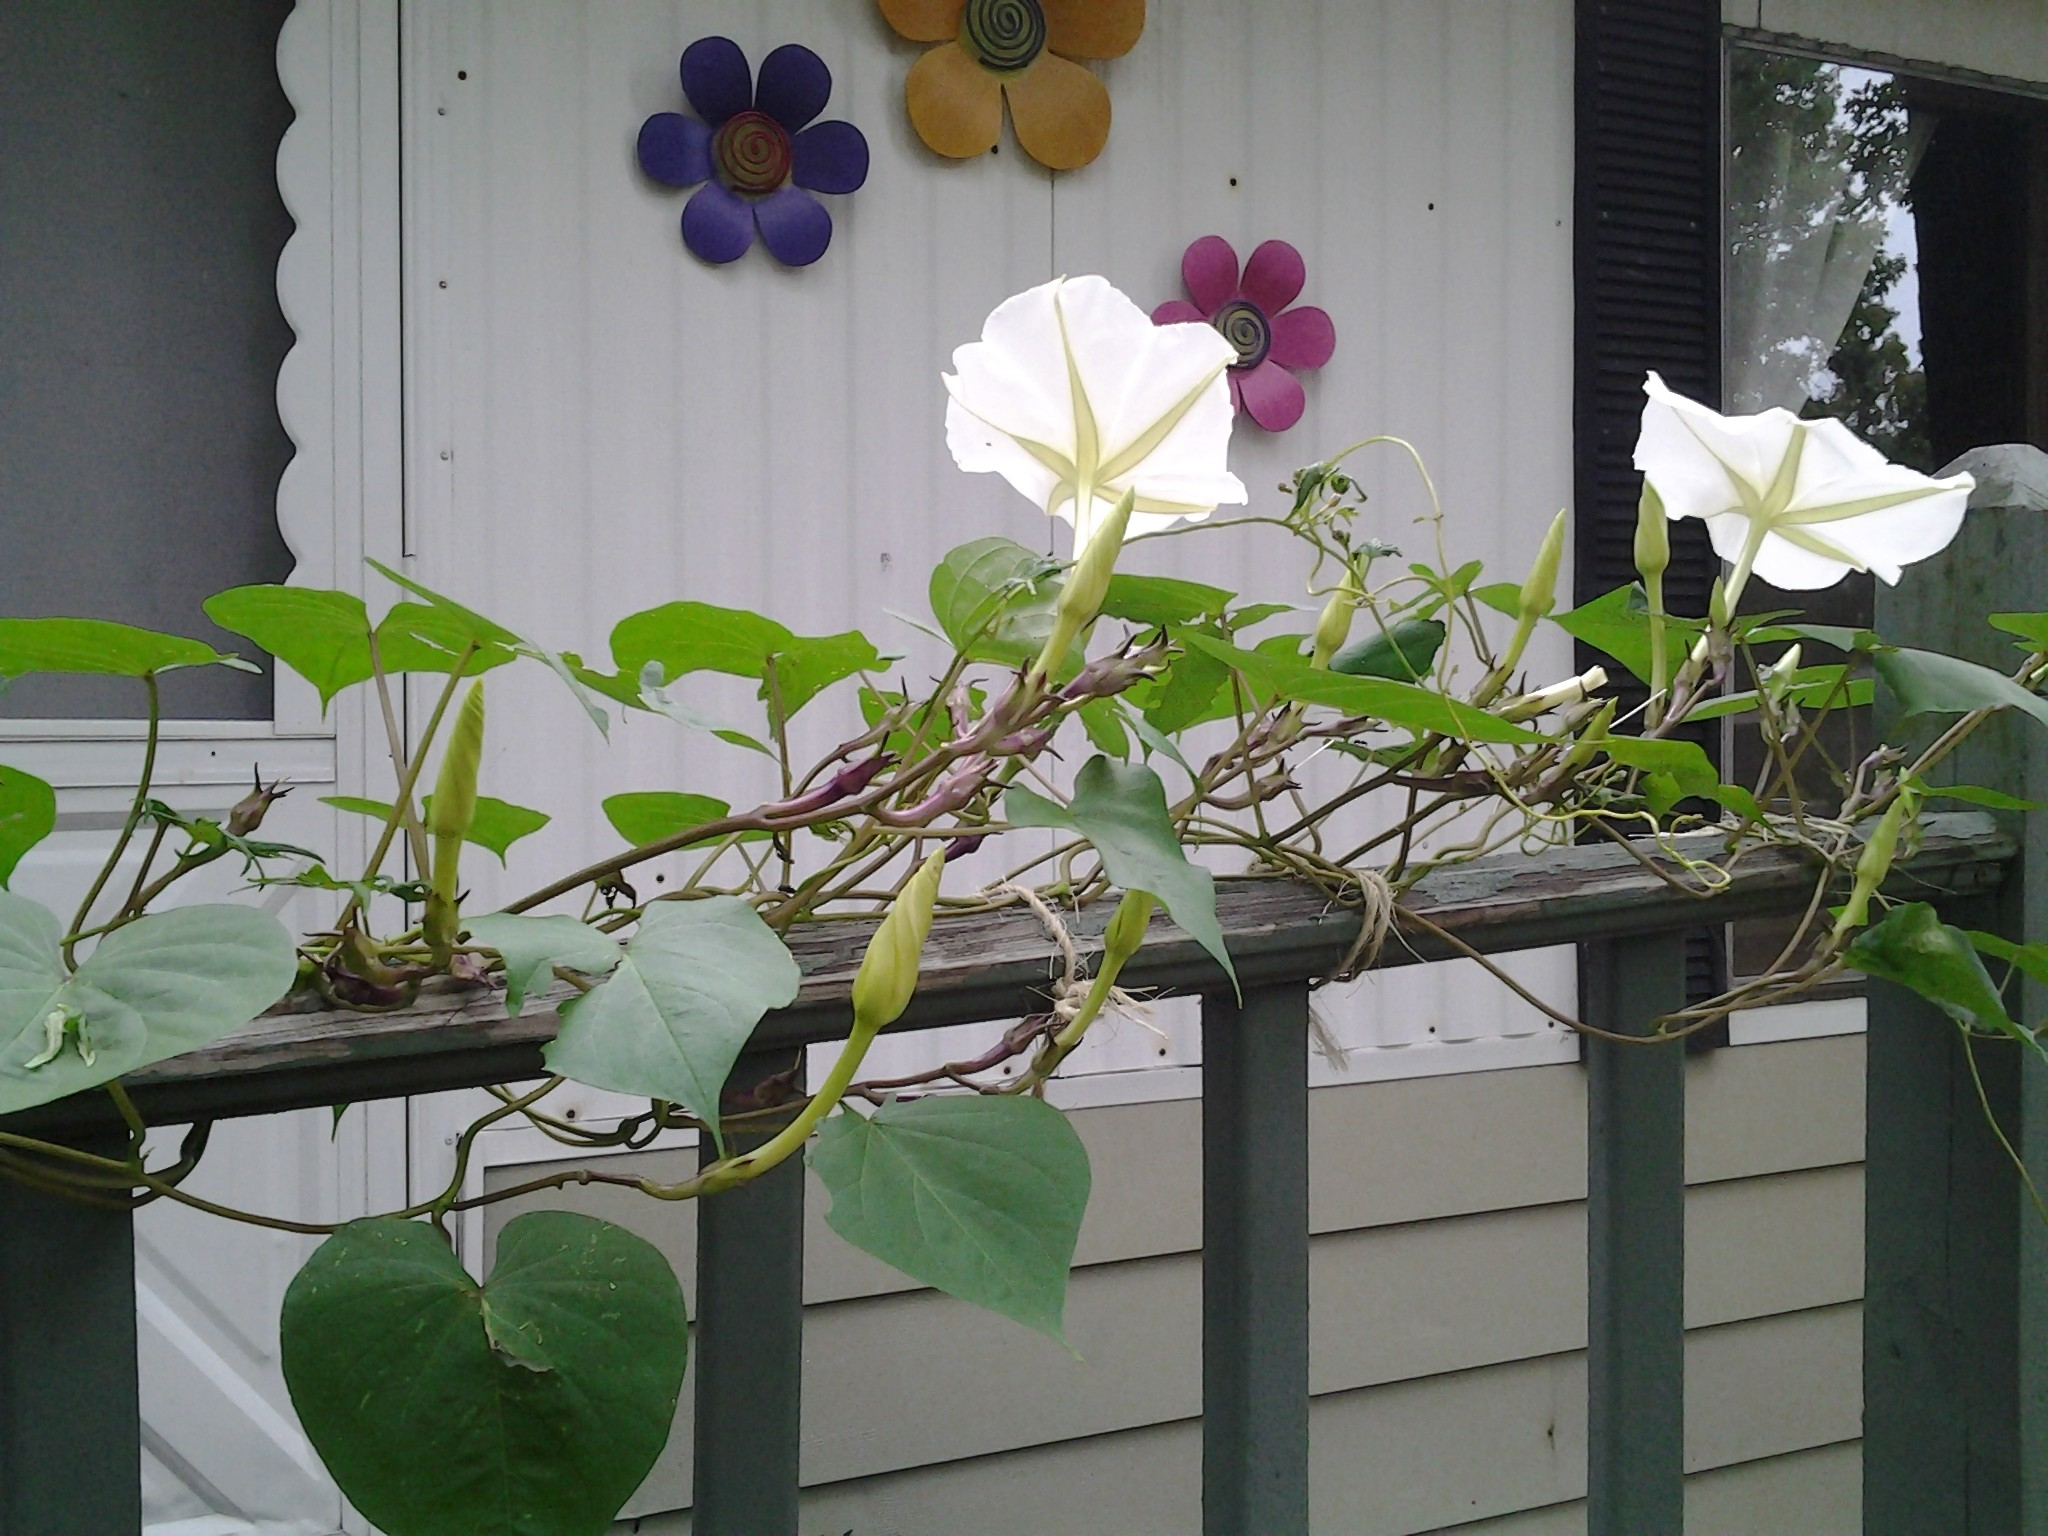 Moonflowers in the daytime...cloudy cool day